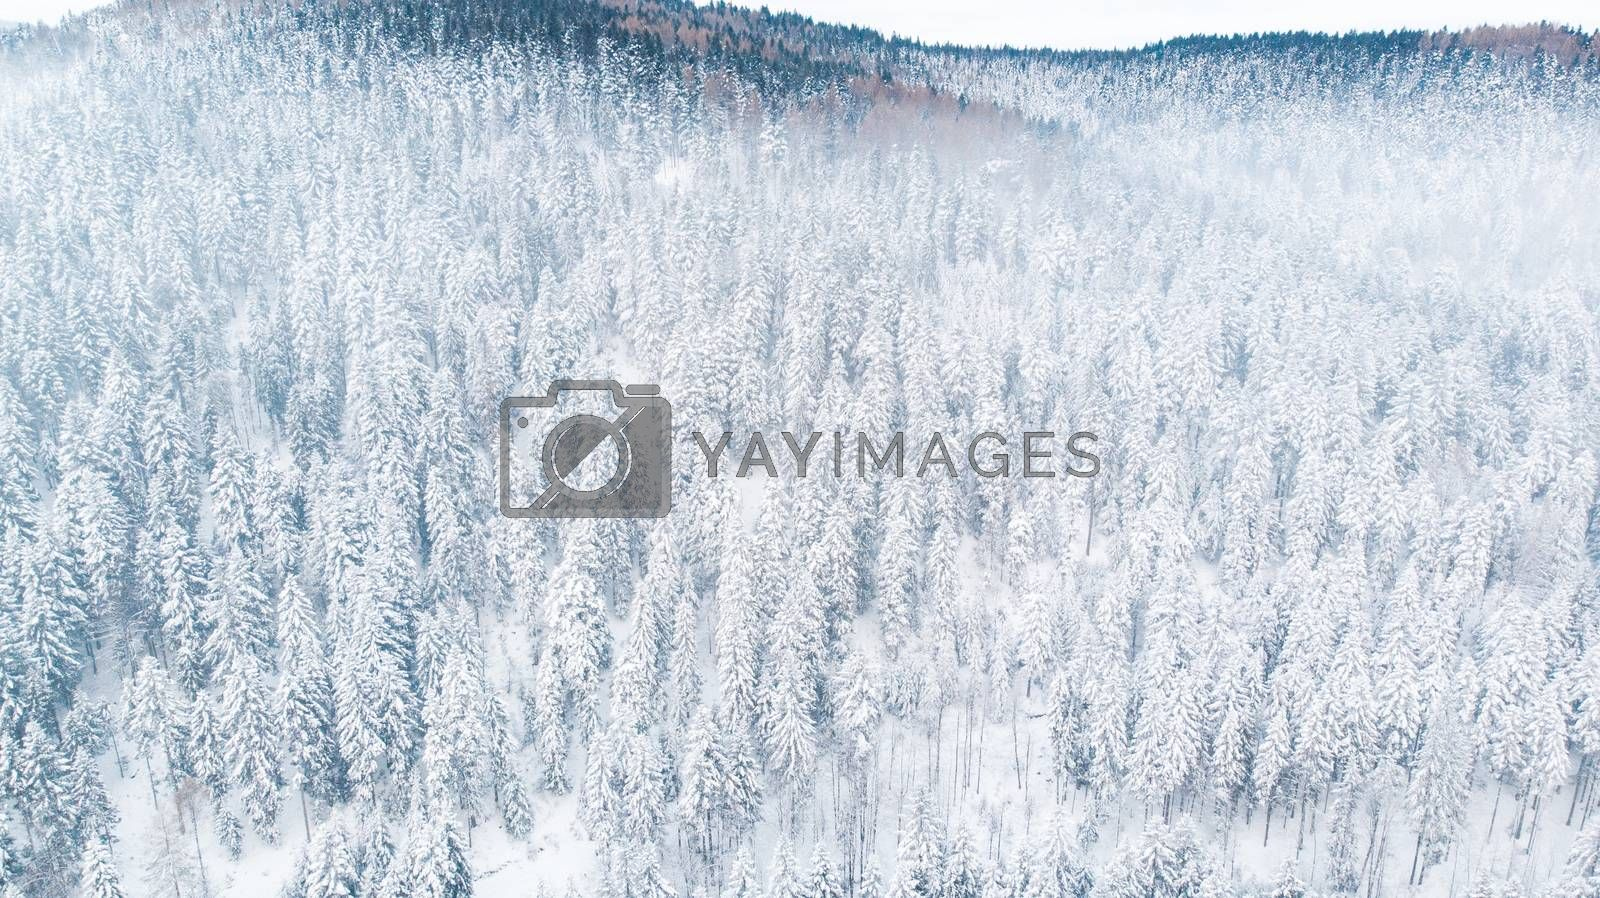 Snow Covered Pine Trees on Hillside in Mountains. Aerial Drone V by merc67